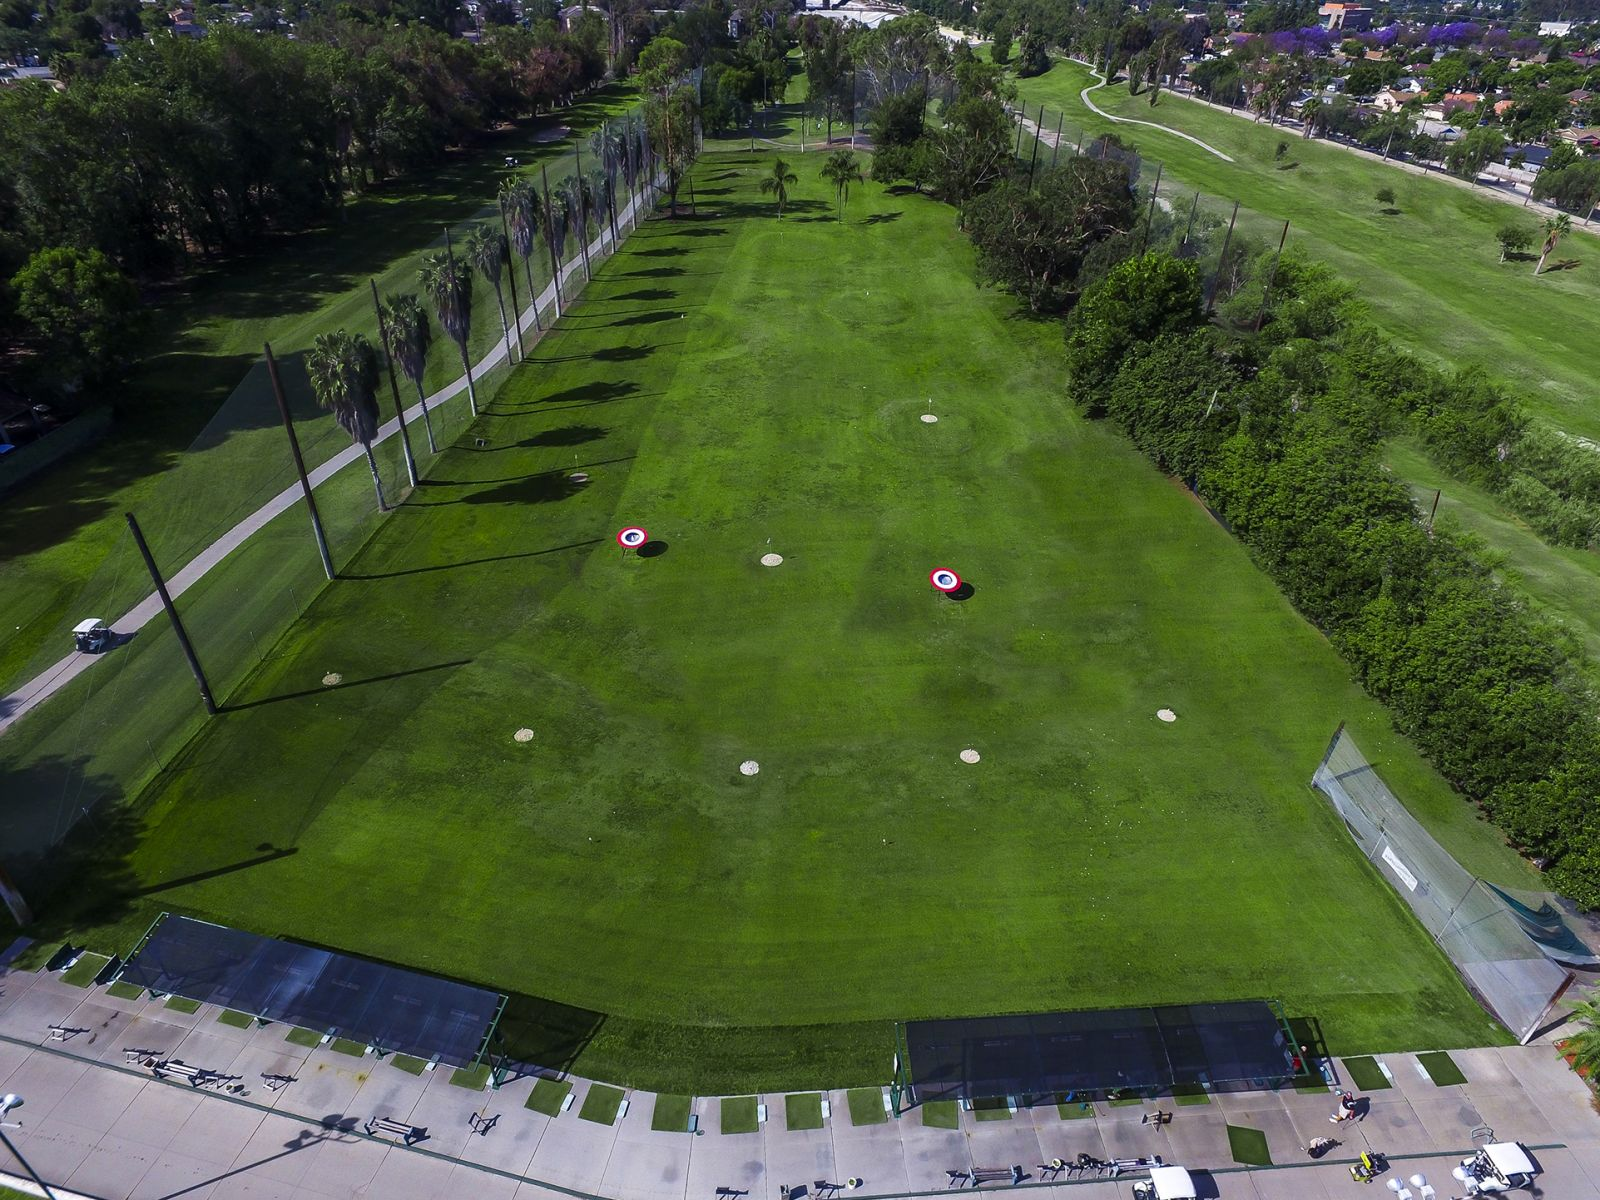 Aerial view of the driving range at River View Golf Course